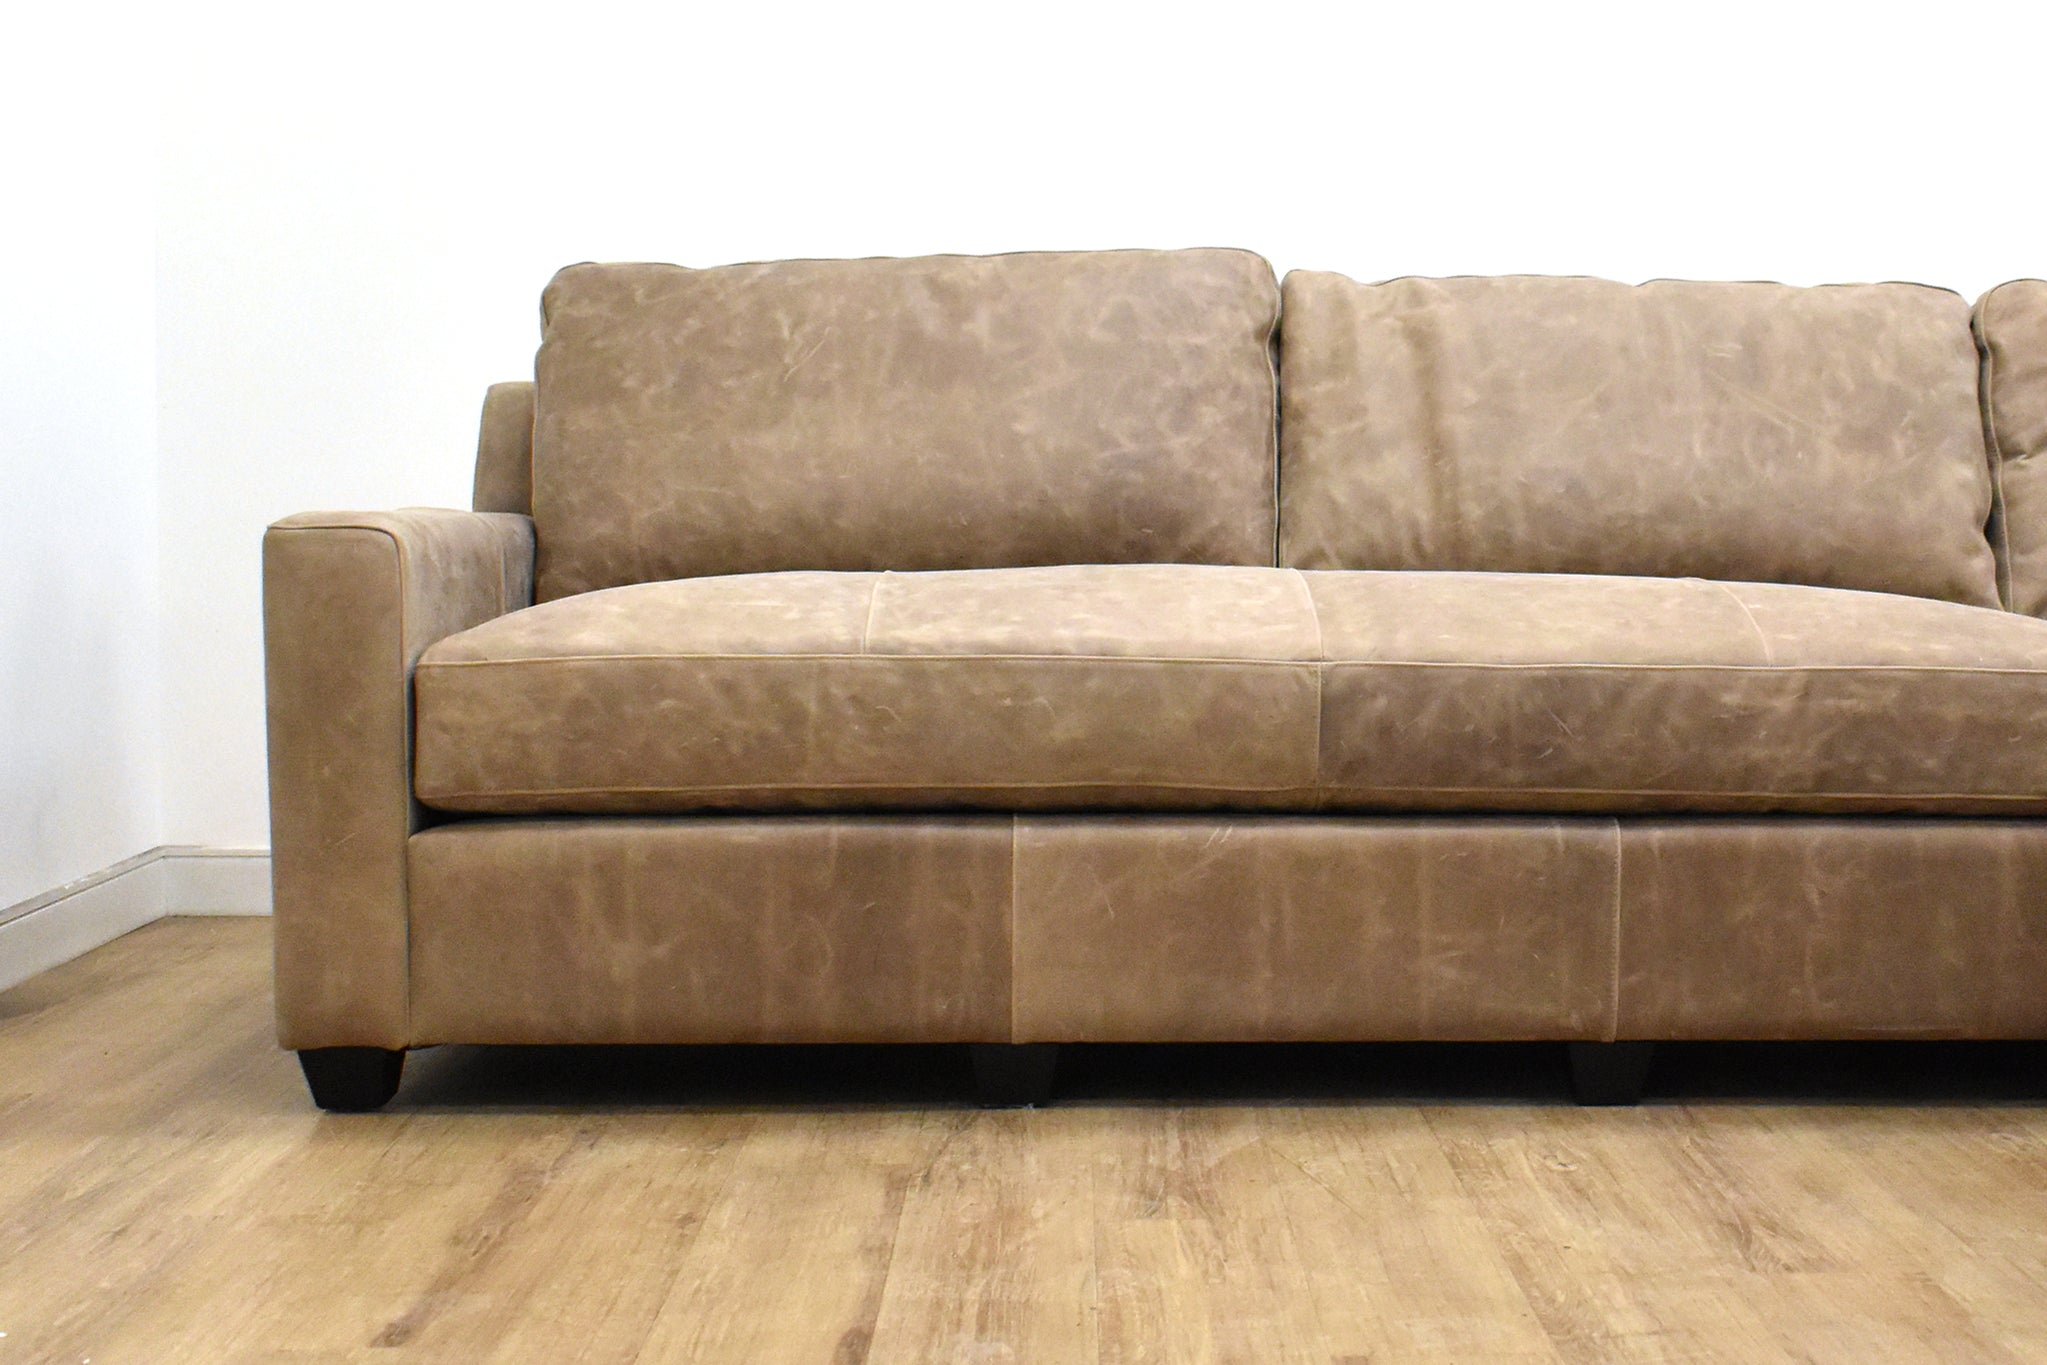 REVELSTOKE LEATHER SOFAS AND SECTIONALS-furniture stores regina-Hunters Furniture